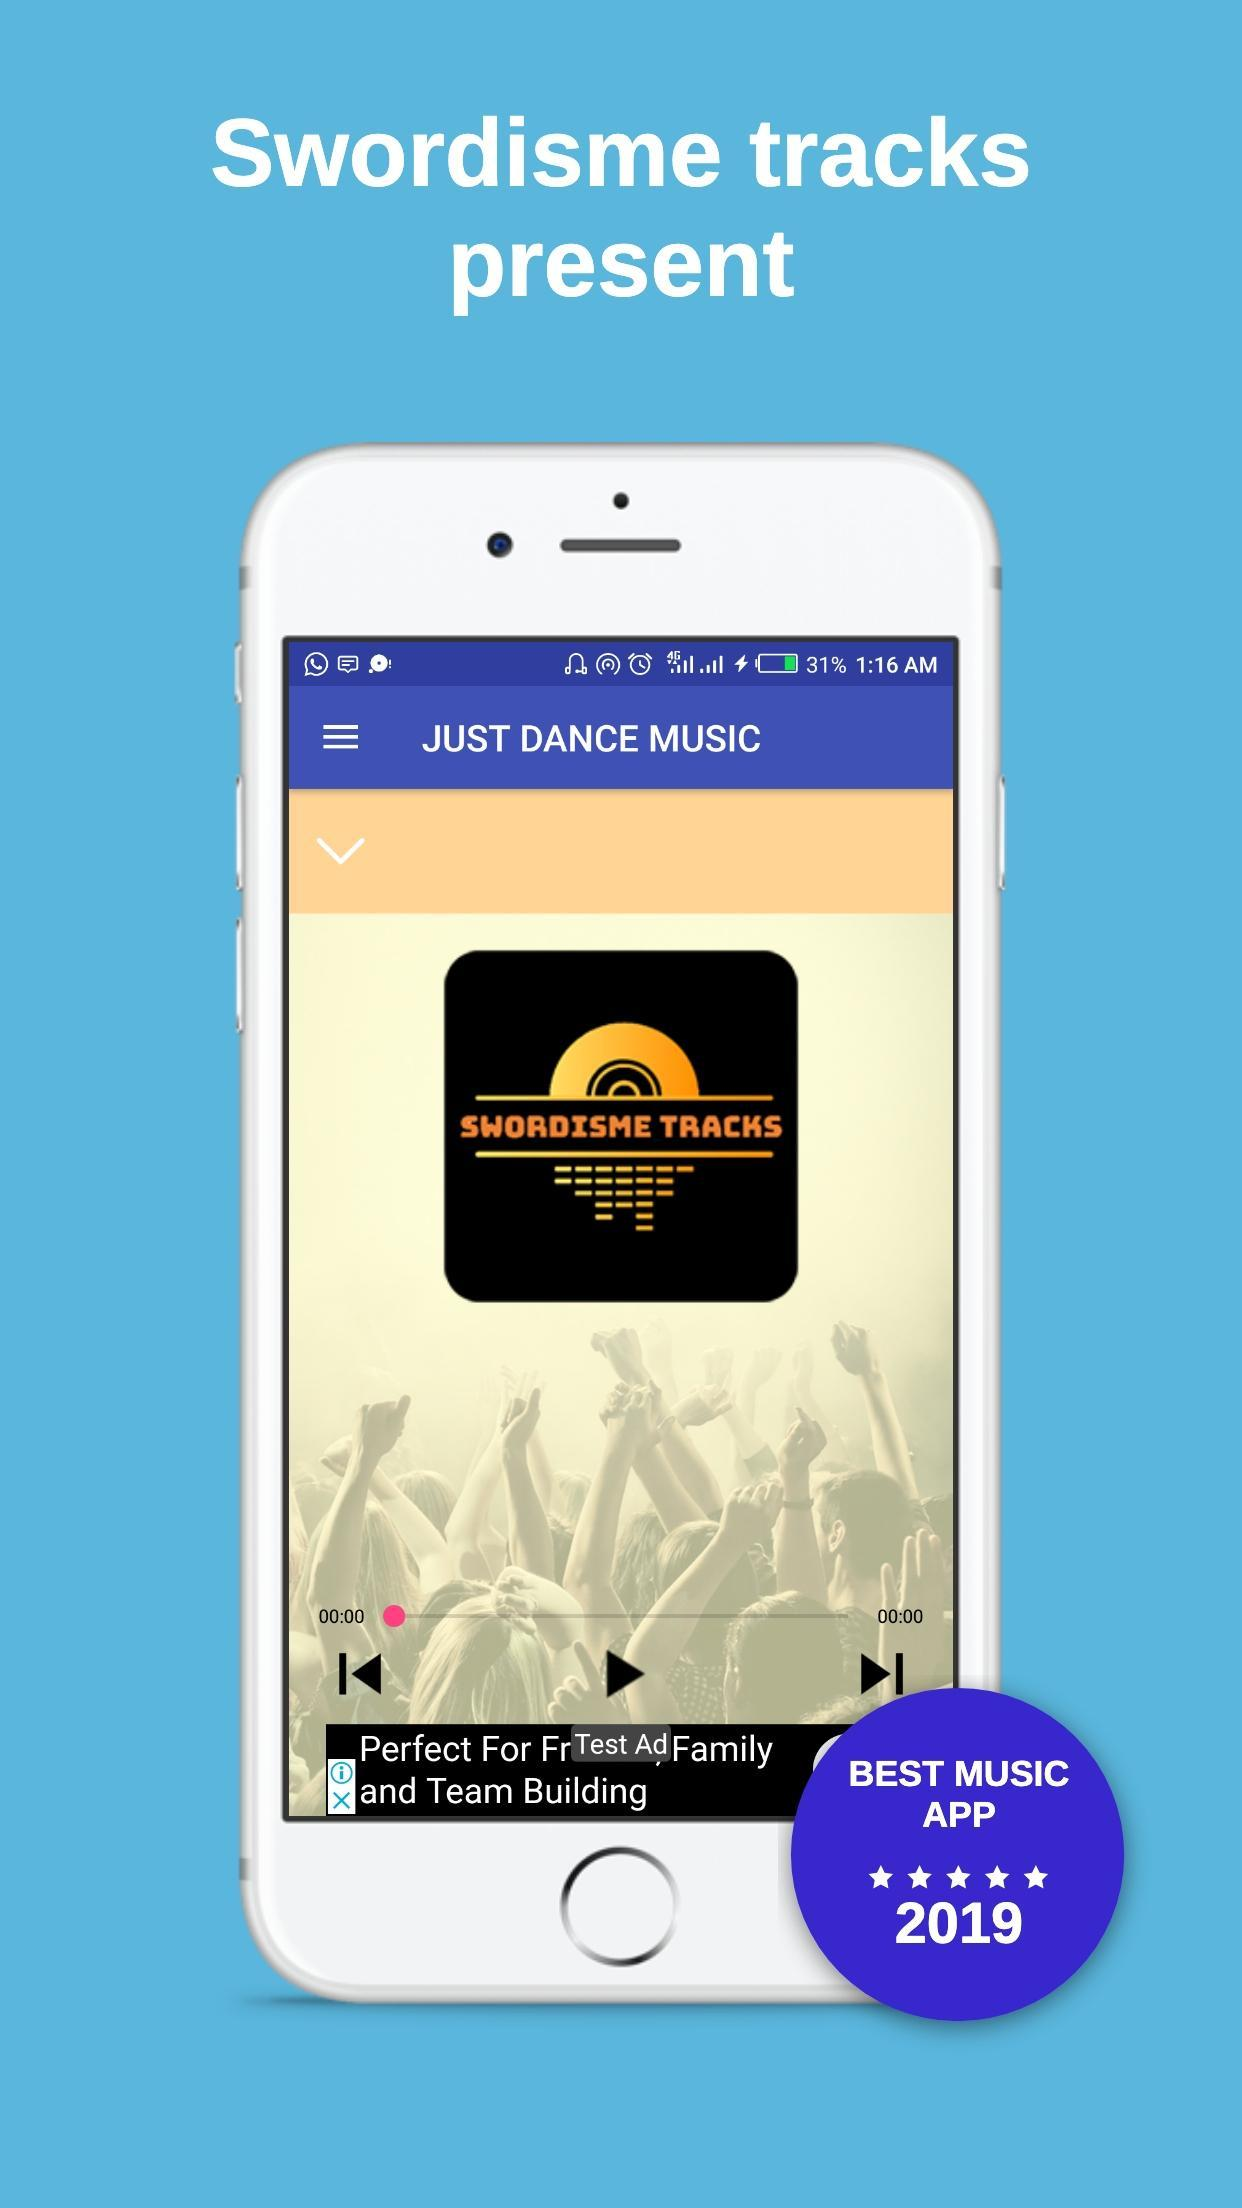 JUST DANCE (HQ) MUSIC | Best Songs Mixture for Android - APK Download